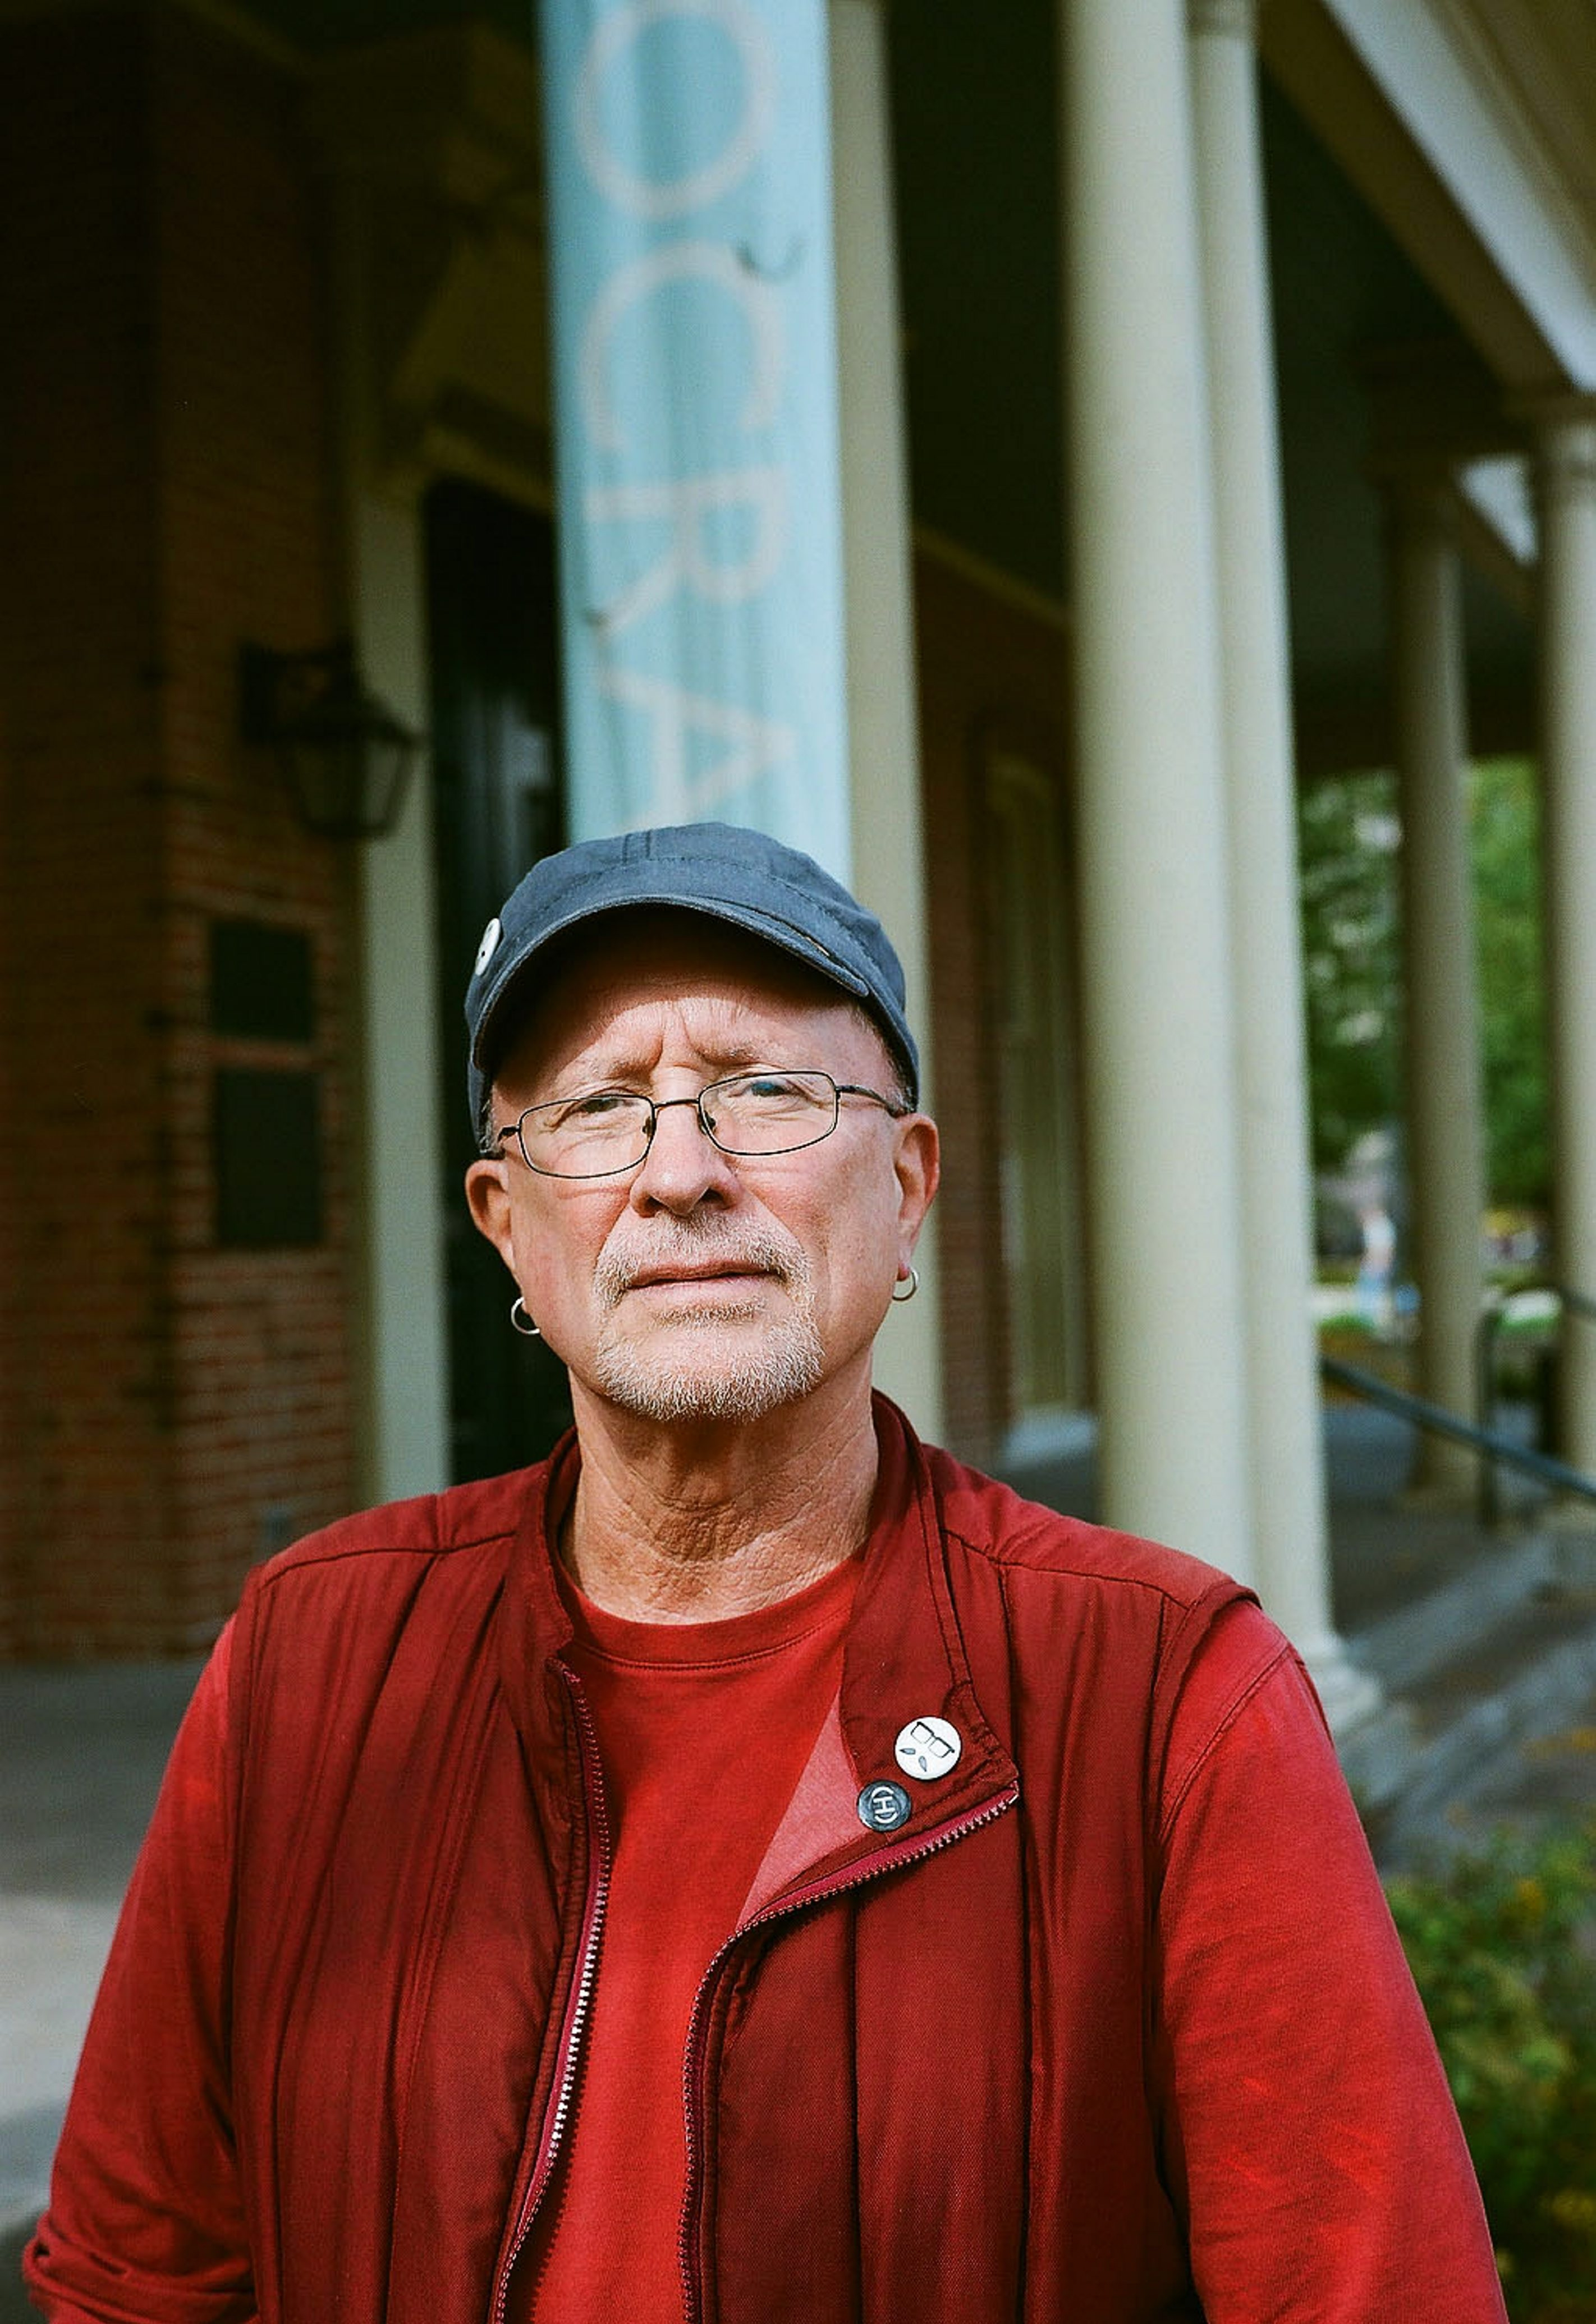 William Ayers will be speaking at 7 p.m. Wednesday in Burning Books.